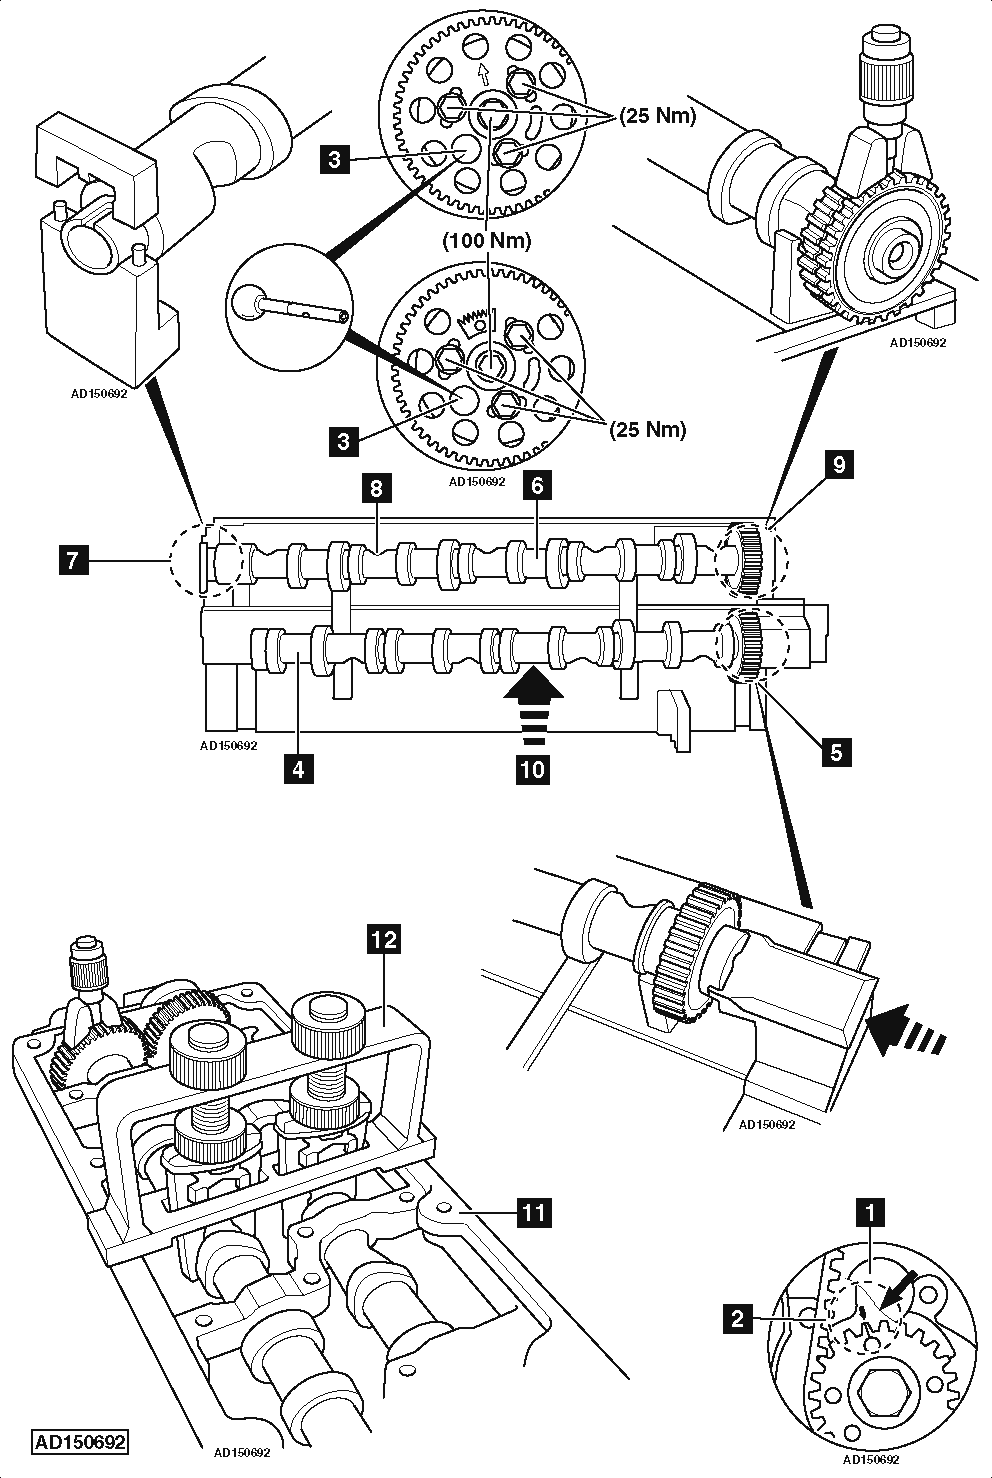 2wm1a Air Conditioner Low Pressure Service Port Located together with Nissan Quest Abs Wiring moreover 2014 Vw Jetta Fuse Box Diagram Throughout 2001 Jetta Fuse Box Diagram besides 28 1972 Beetle Fuse Box additionally 1216917 Light Switch Dome Light Control. on 2001 vw beetle fuse chart